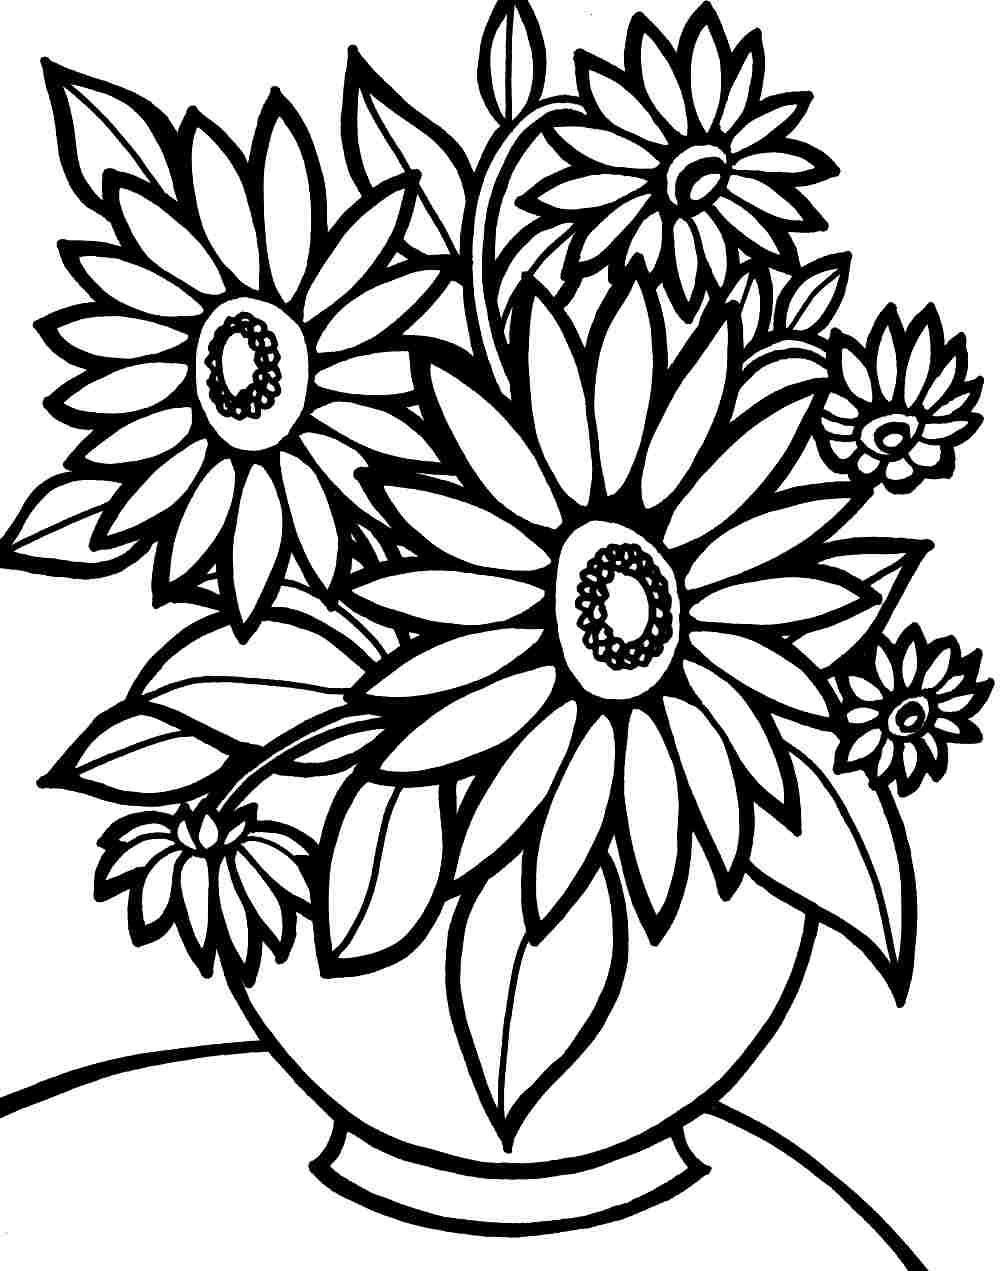 photo regarding Printable Flower Coloring Pages referred to as Colouring Internet pages Bouquet Bouquets Printable No cost For Young children